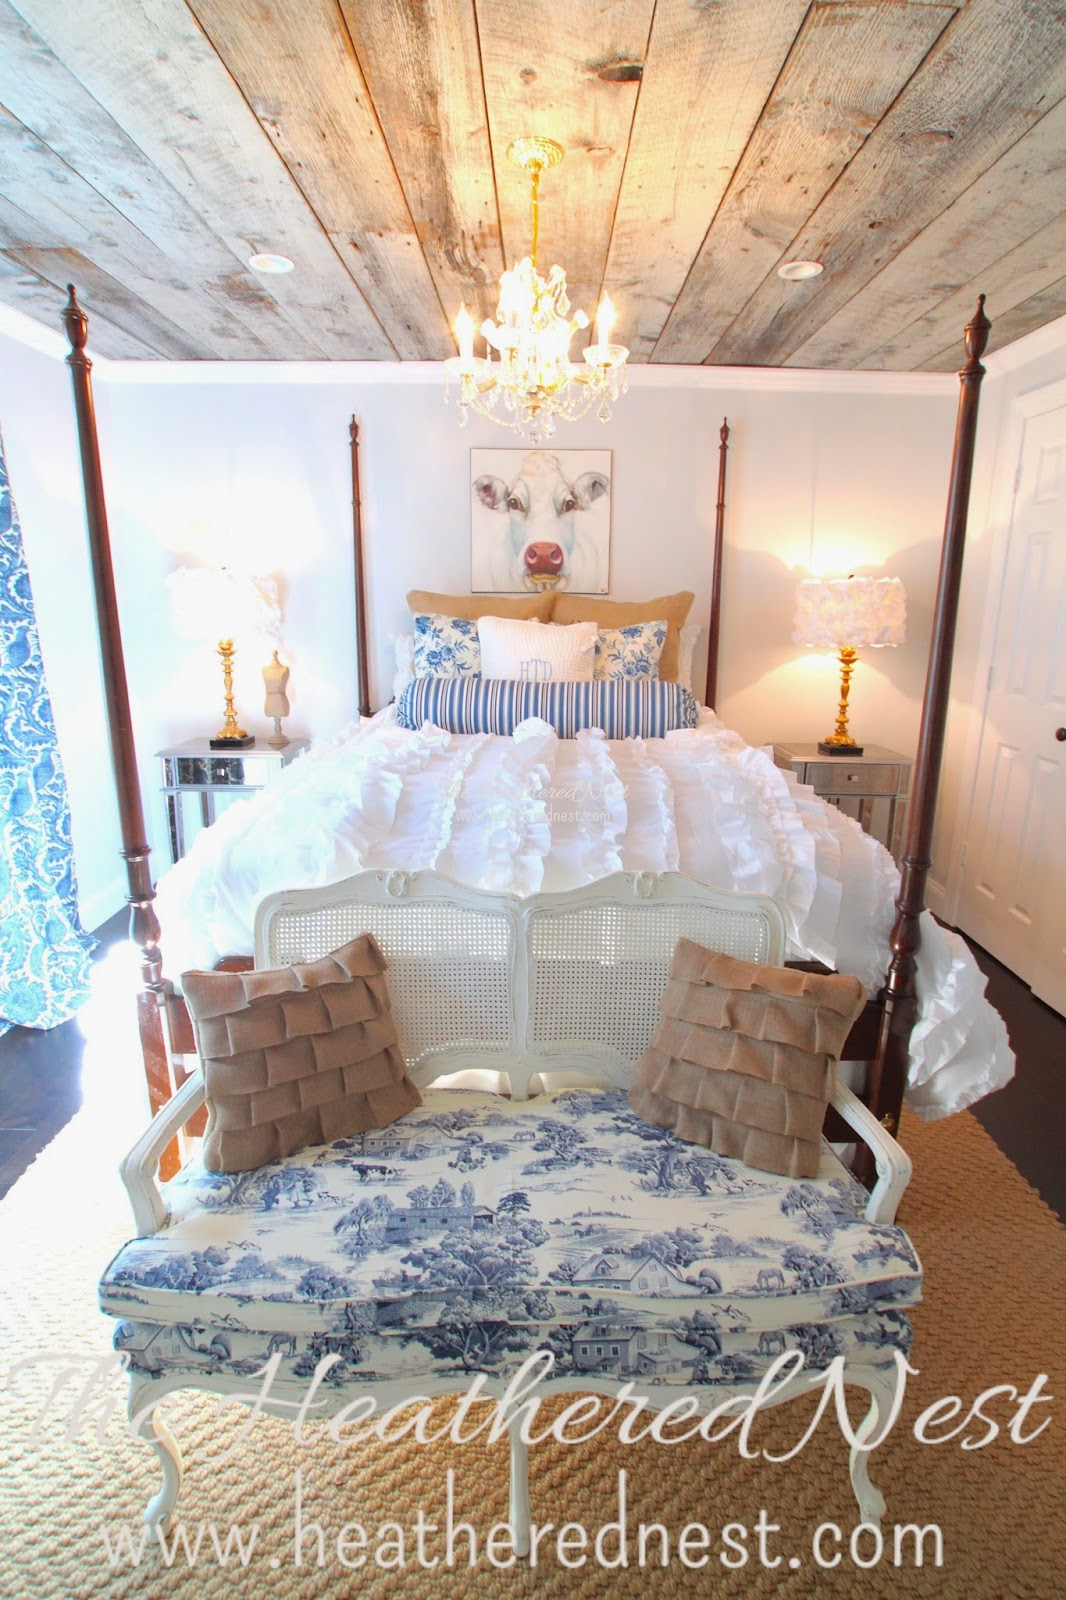 heathered nest guest room, heathered nest be our guest, be our guest, heathered nest cow, toile, burlap, barnboard ceiling, ruffle duvet, toile settee, poster bed, blue and white decor, flower lampshades